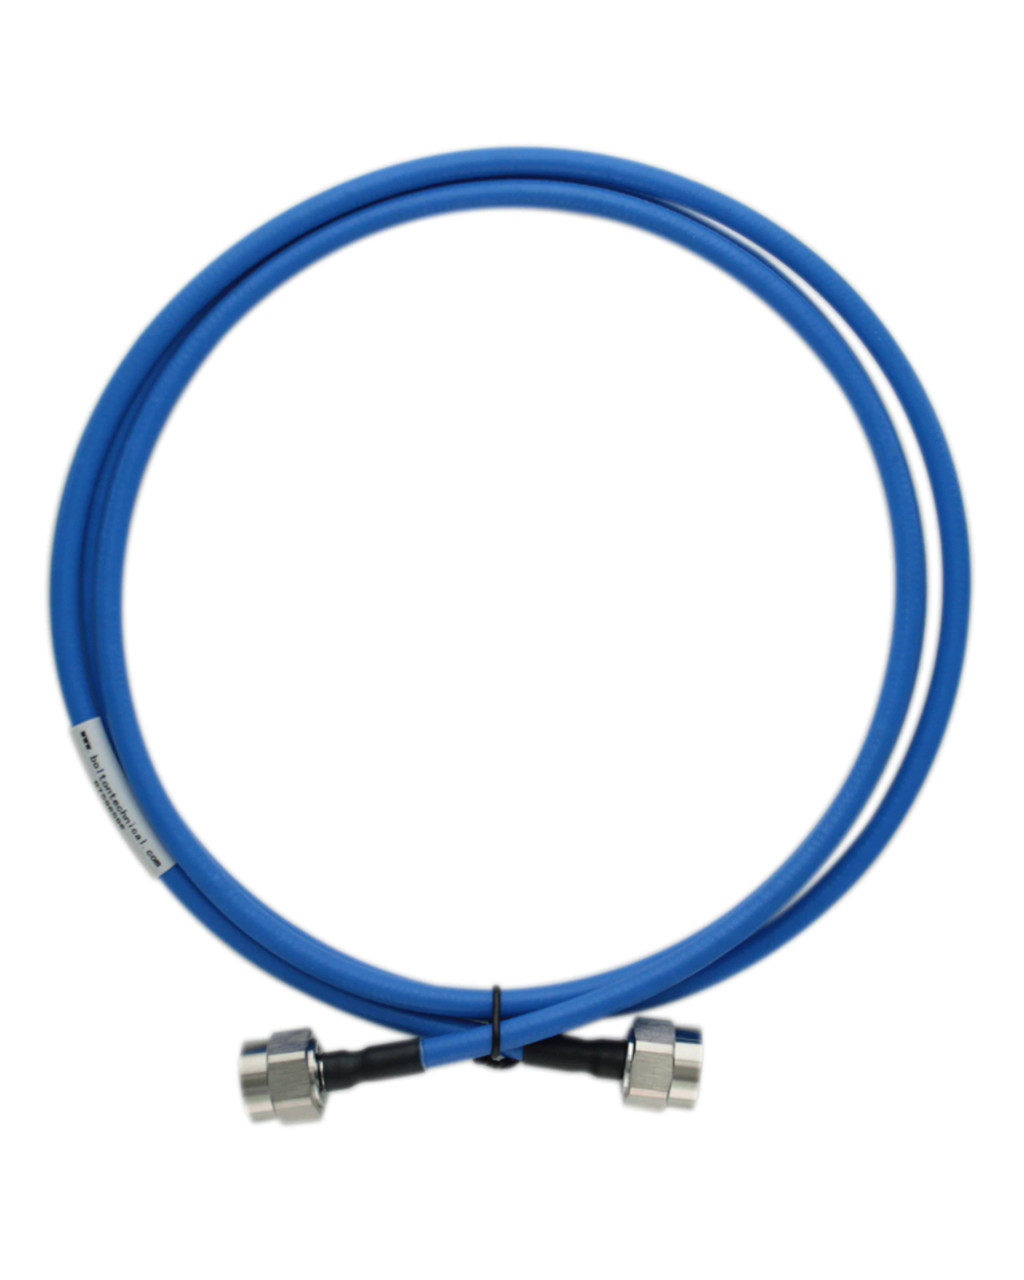 6ft SPO-250 Jumper Cable N-Male to N-Male Connectors